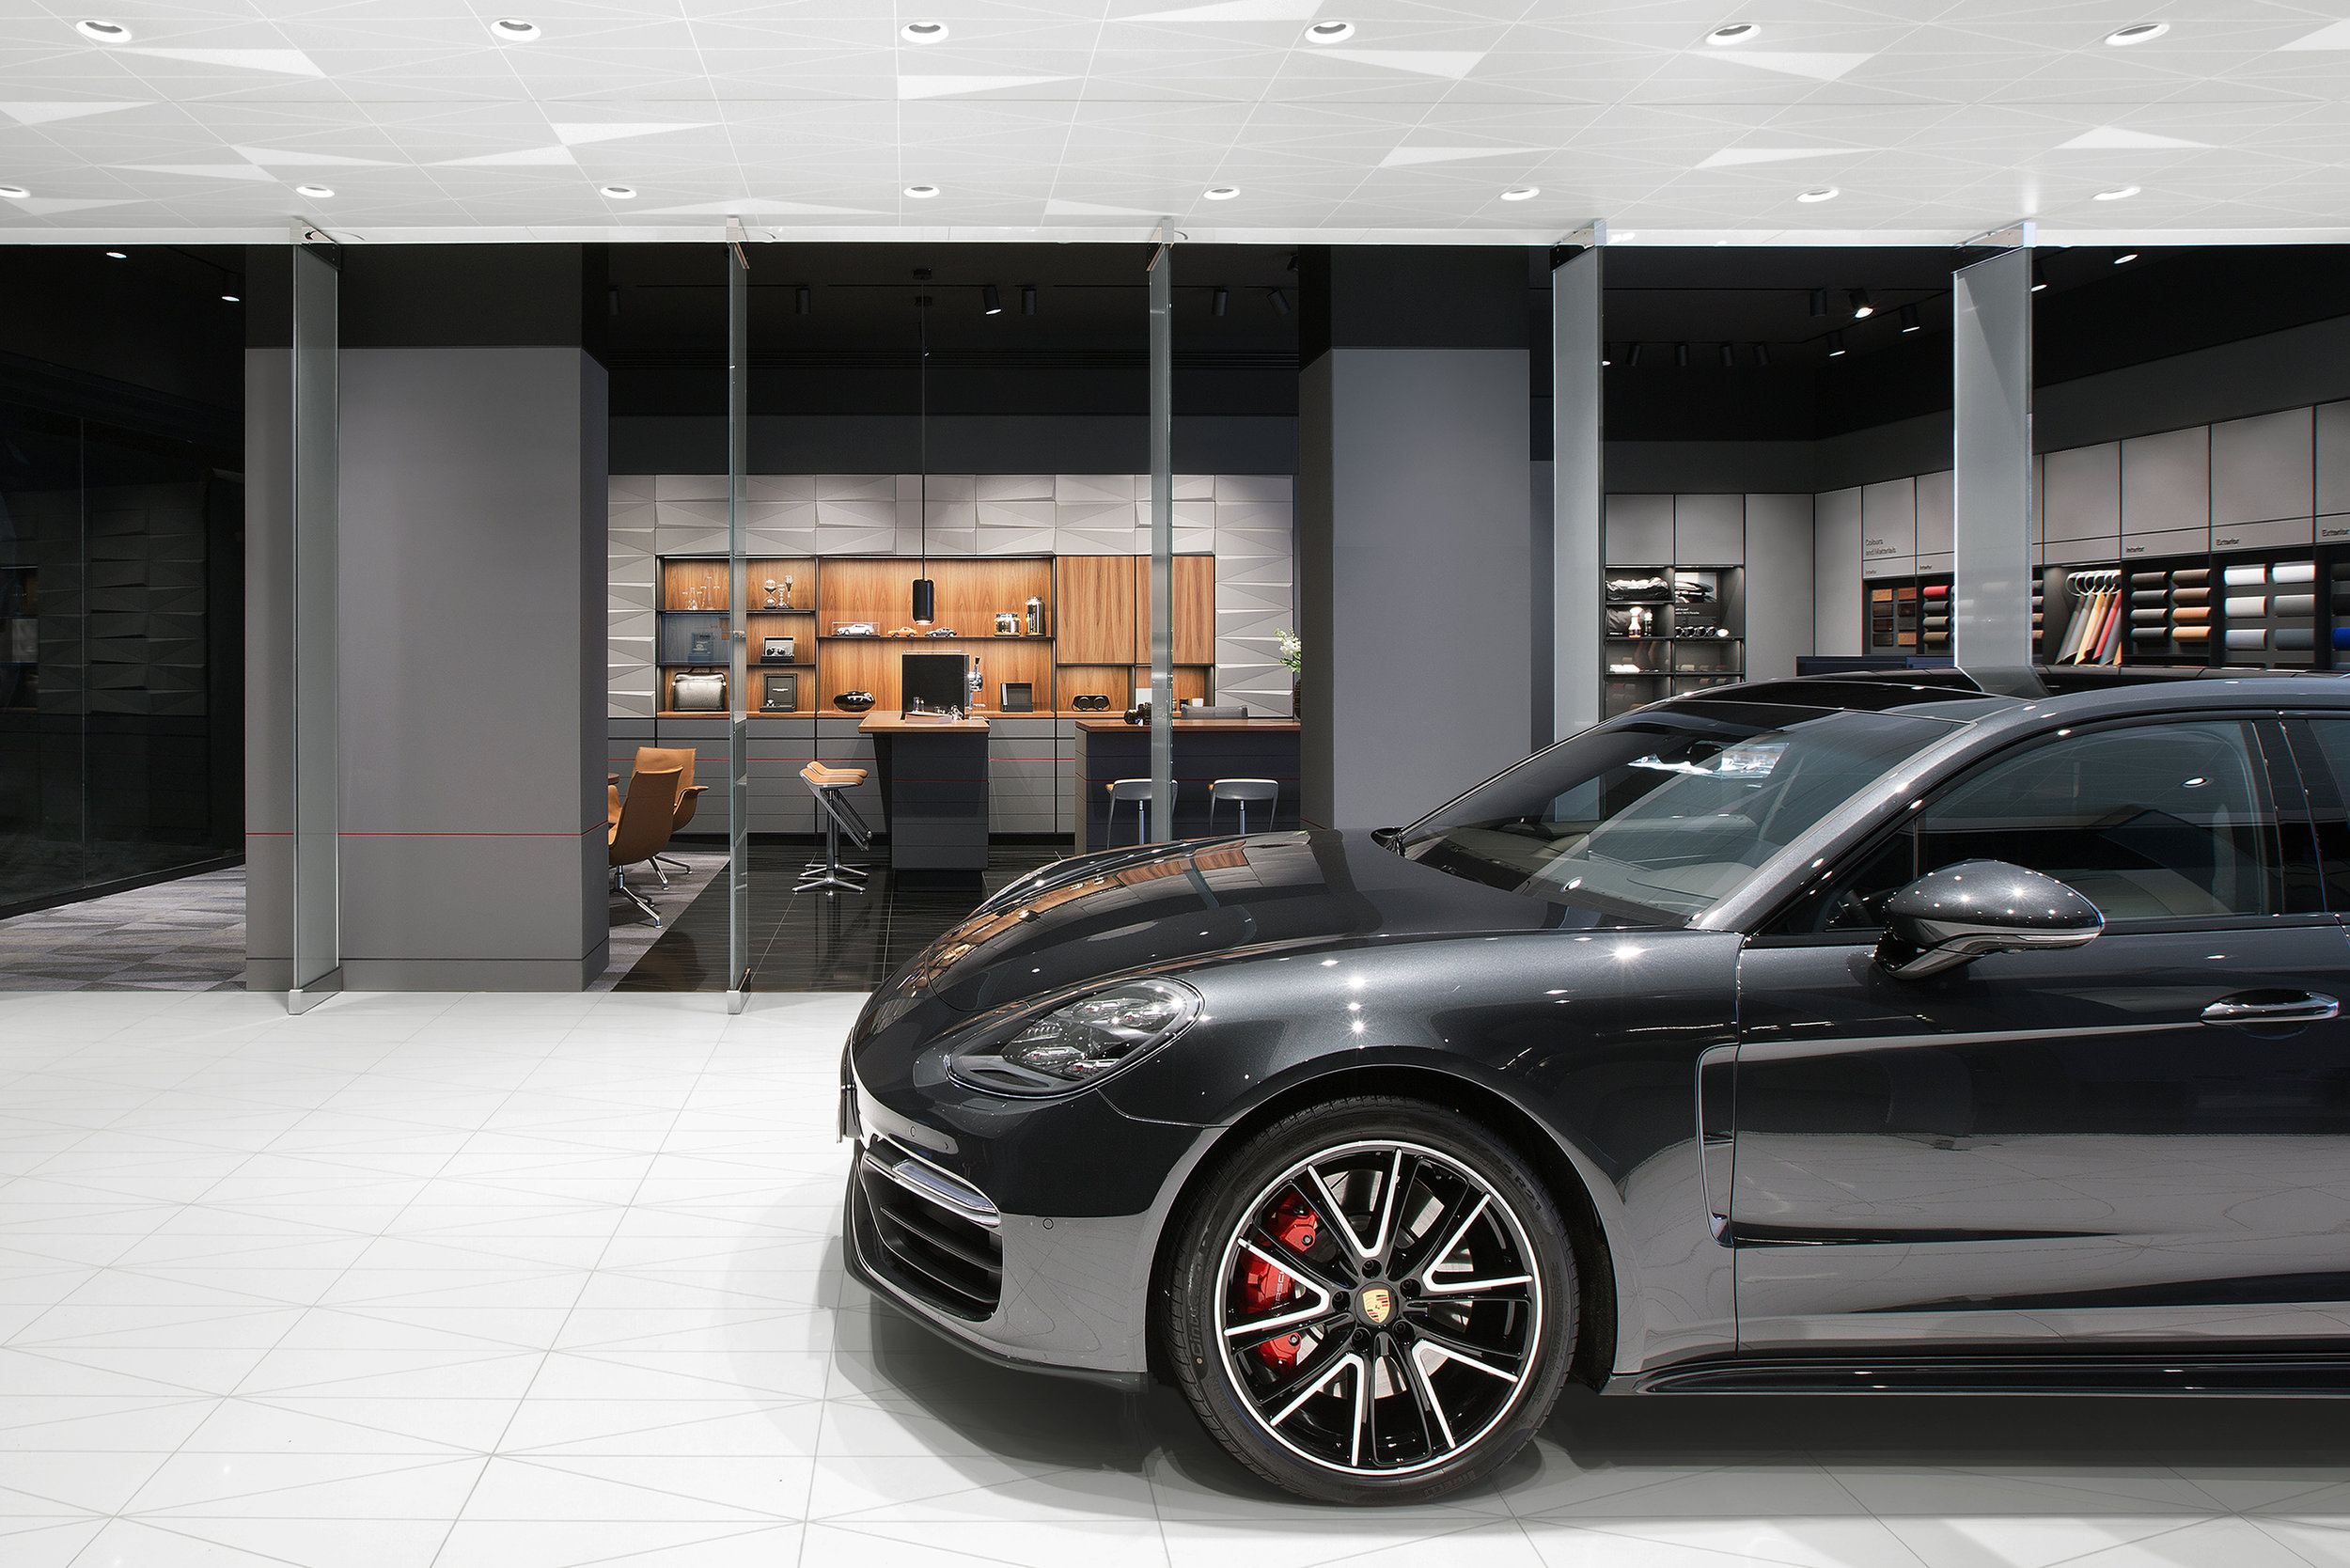 porsche-studio_retail-interior-design_coordination-berlin_13.jpg